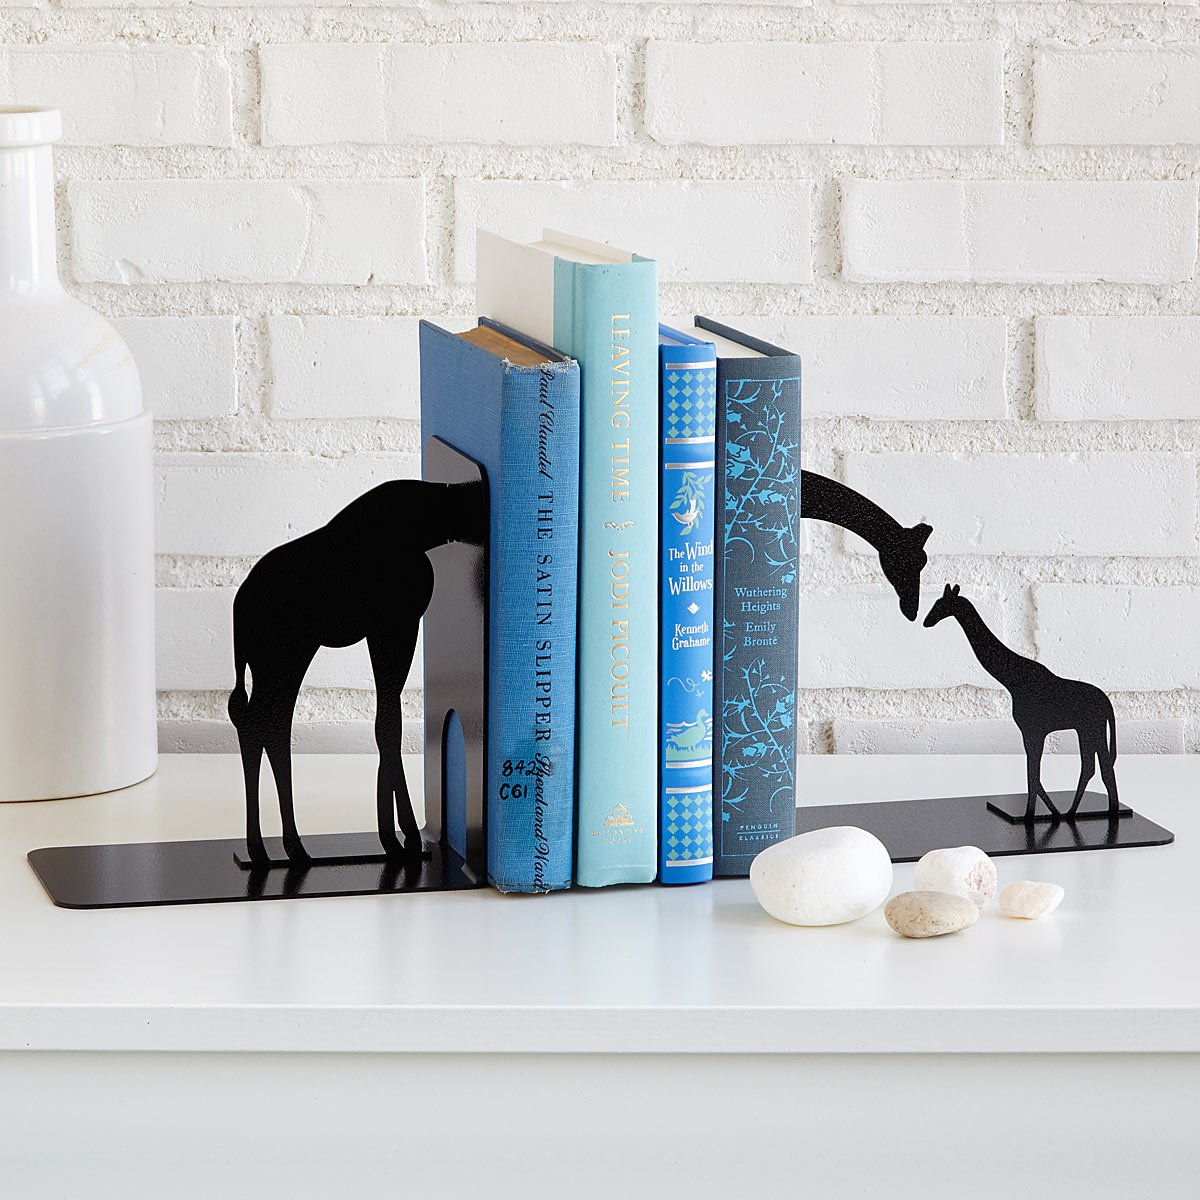 Home Decor Accents accents Giraffe Family Bookends